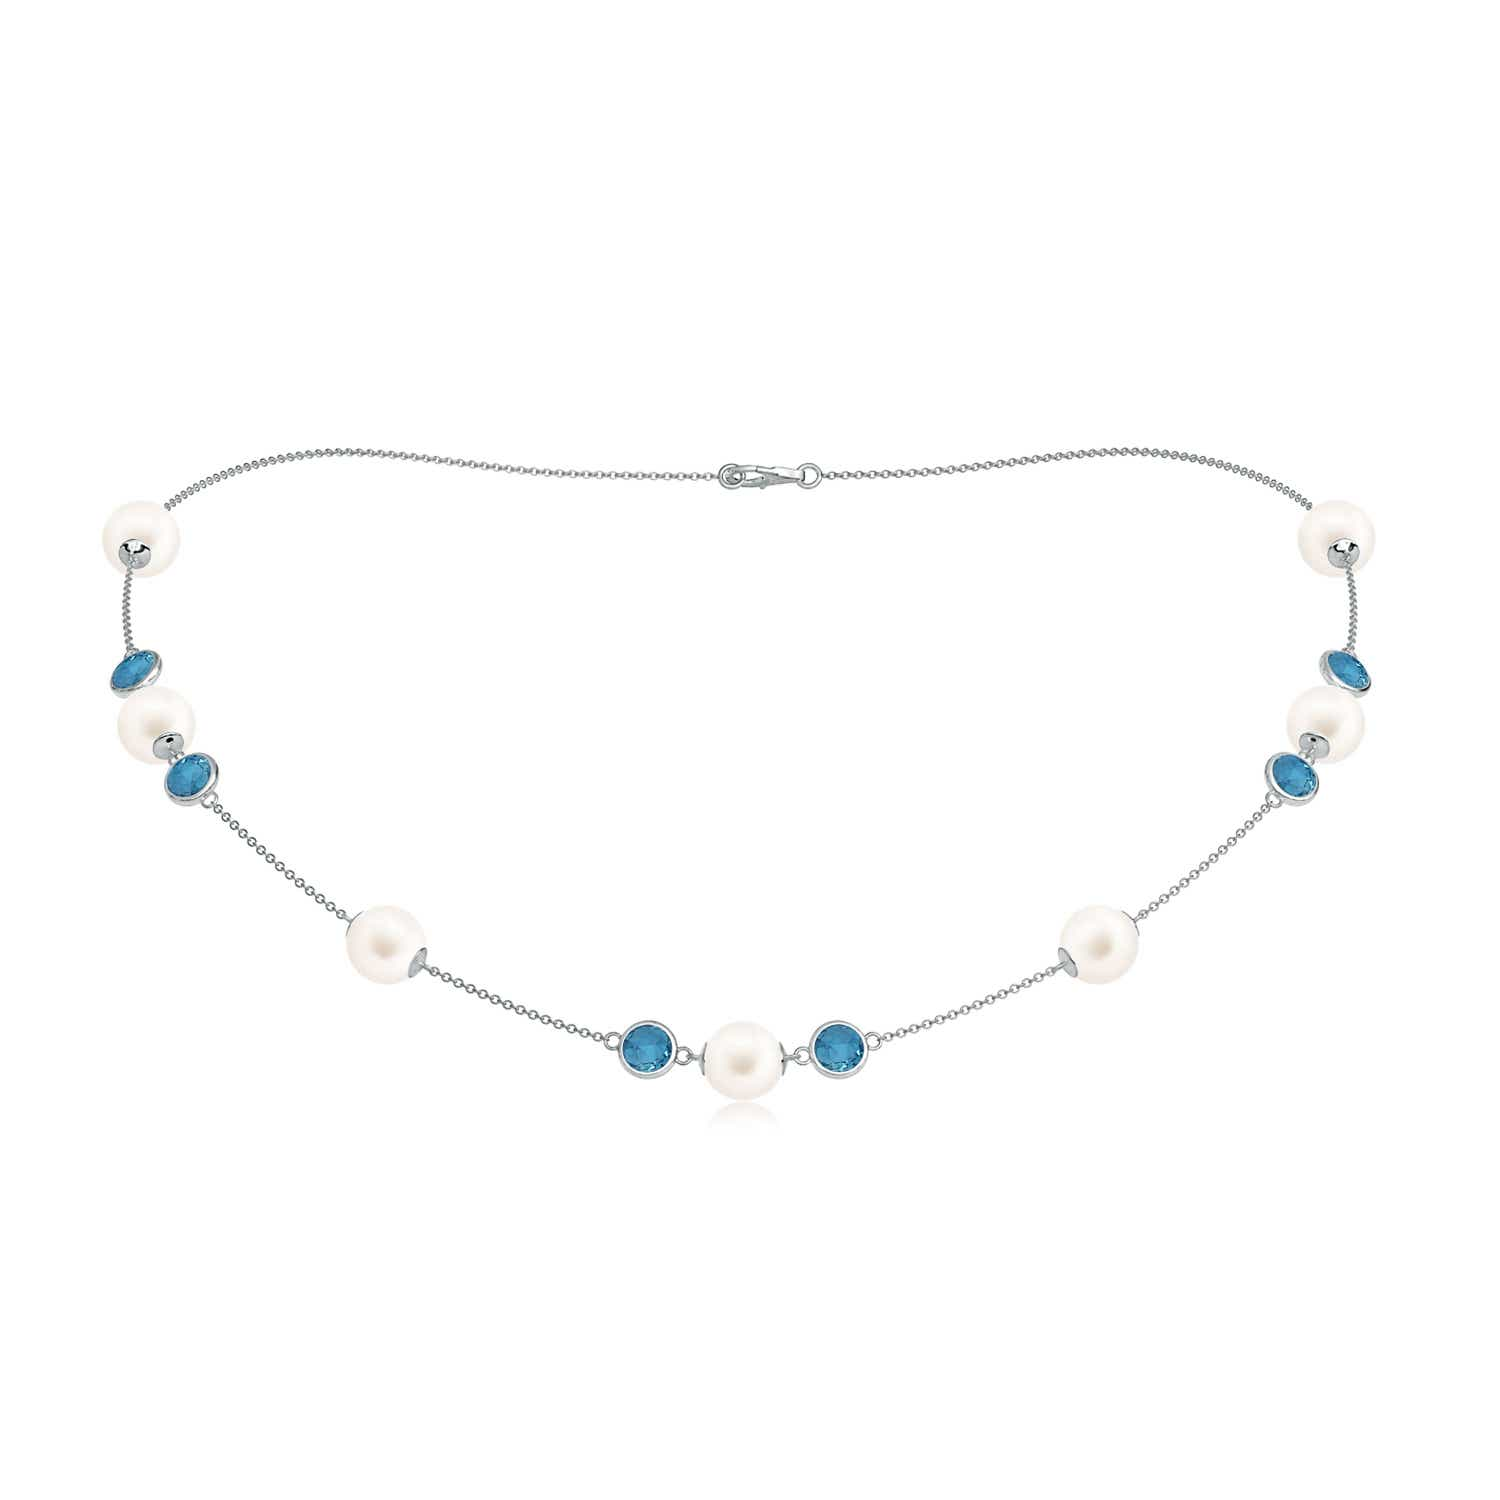 16 Freshwater Cultured Pearl & London Blue Topaz Necklace